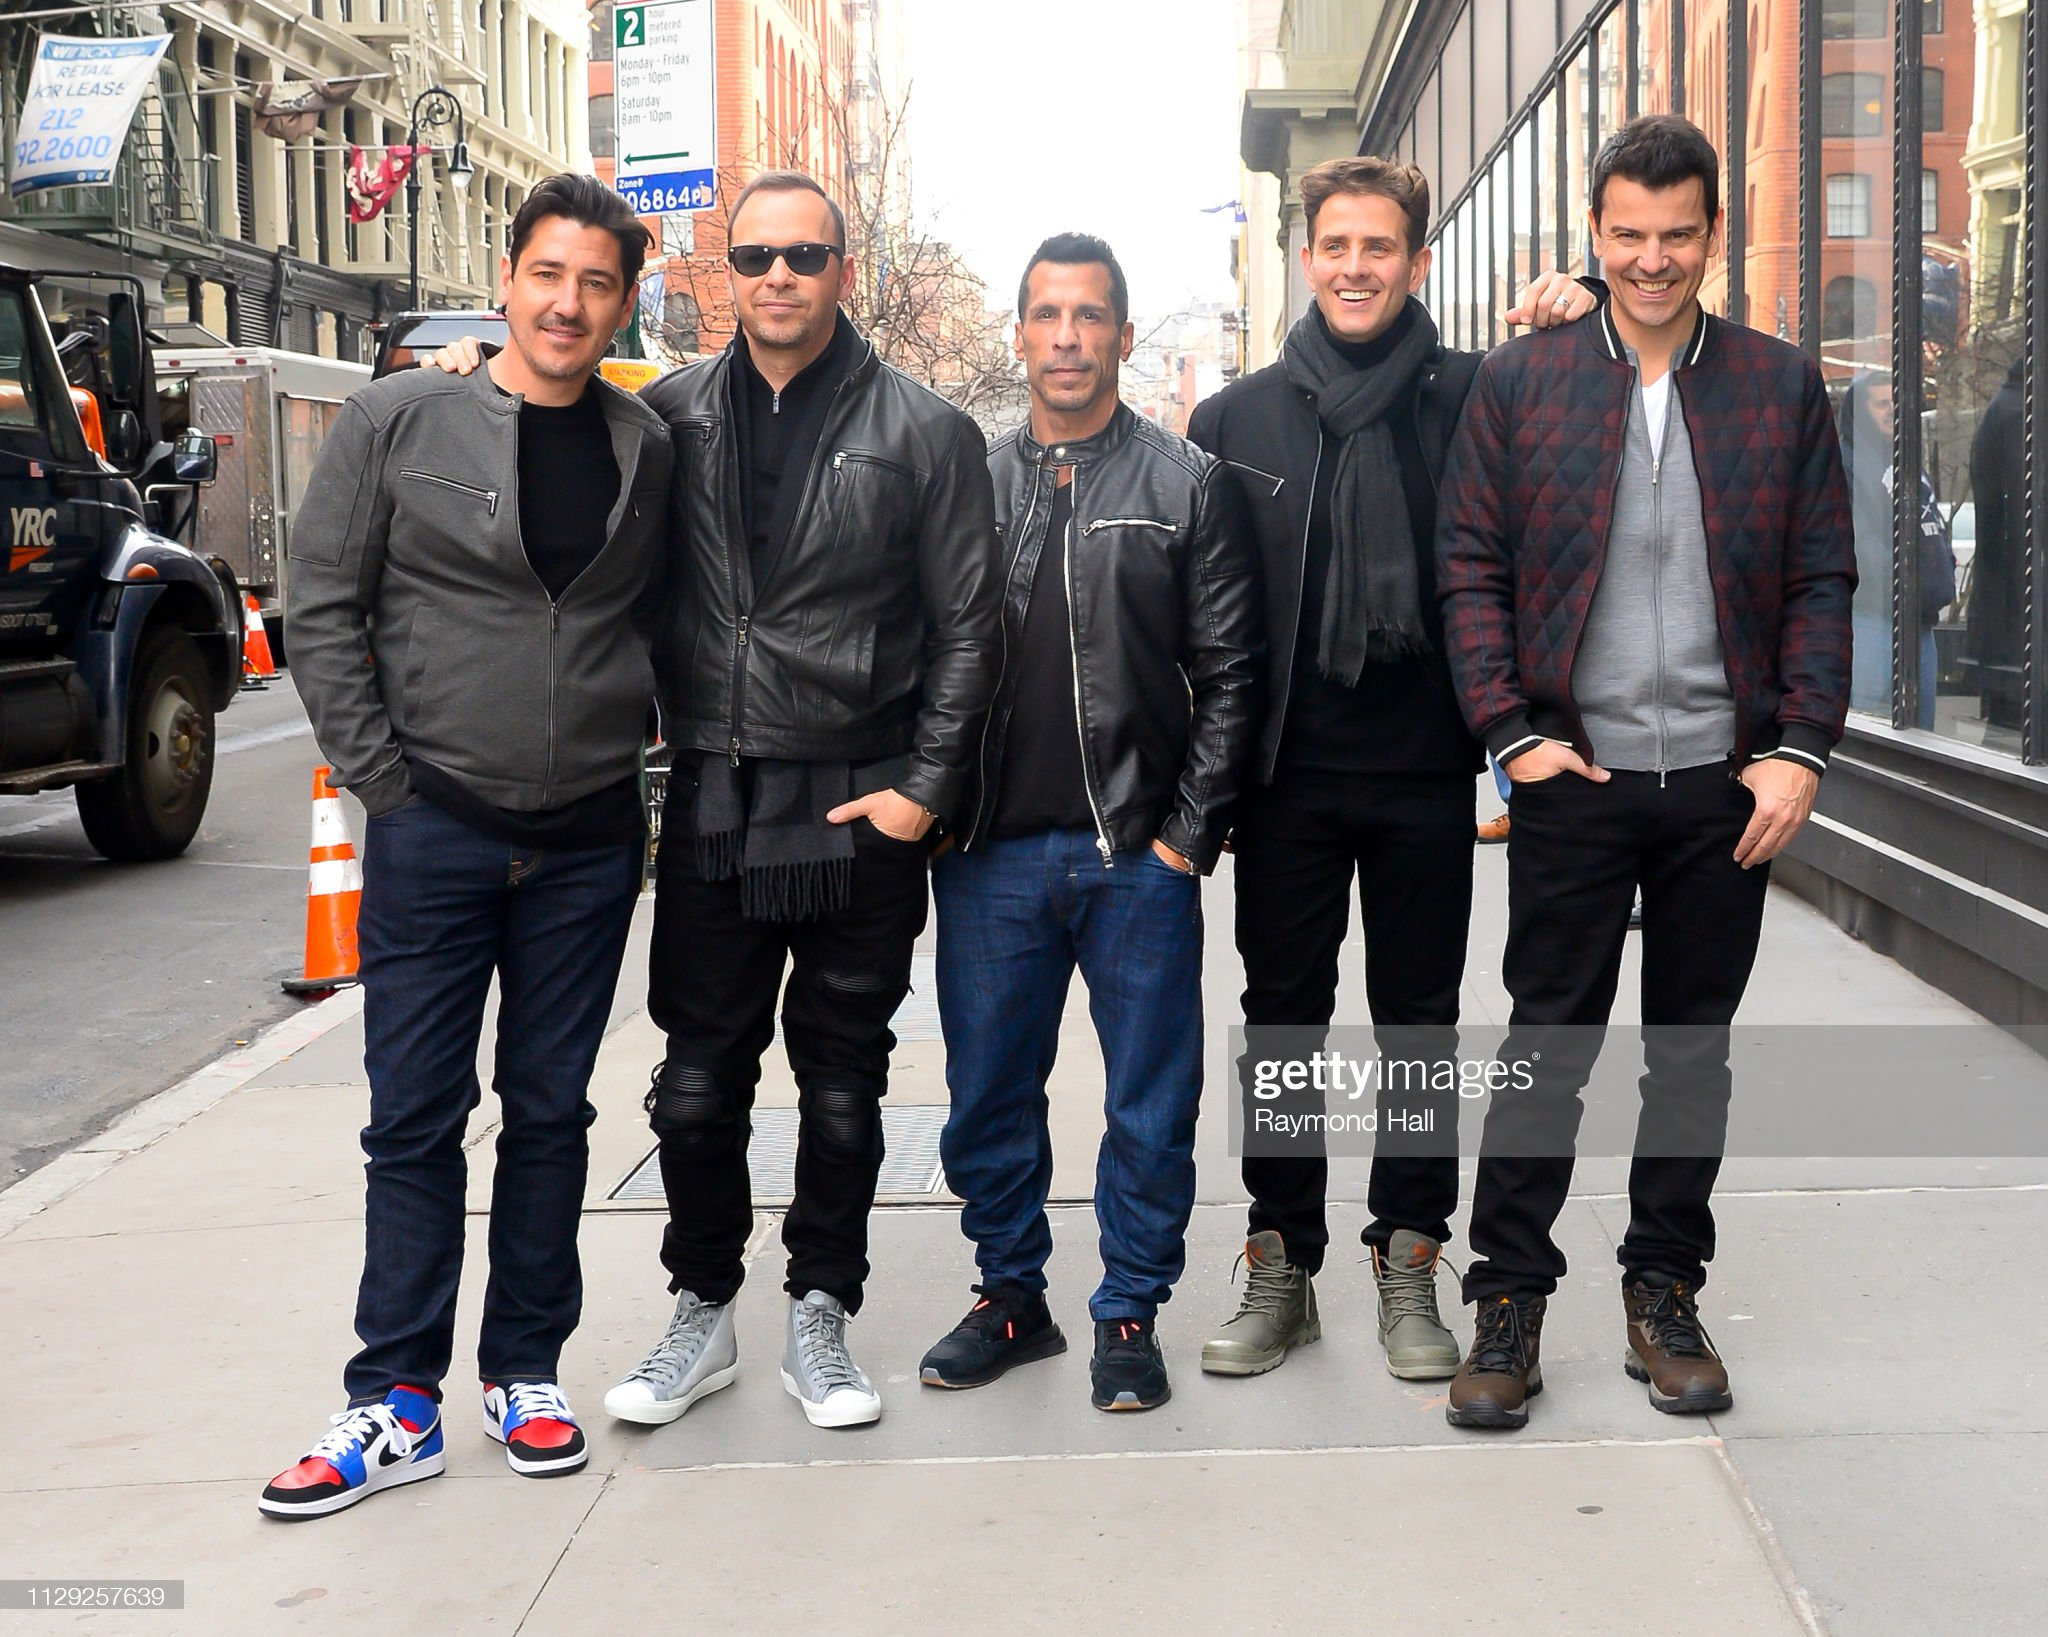 ¿Cuánto mide Donnie Wahlberg? - Altura - Real height New-kids-on-the-block-members-jonathan-knight-donnie-wahlberg-danny-picture-id1129257639?s=2048x2048